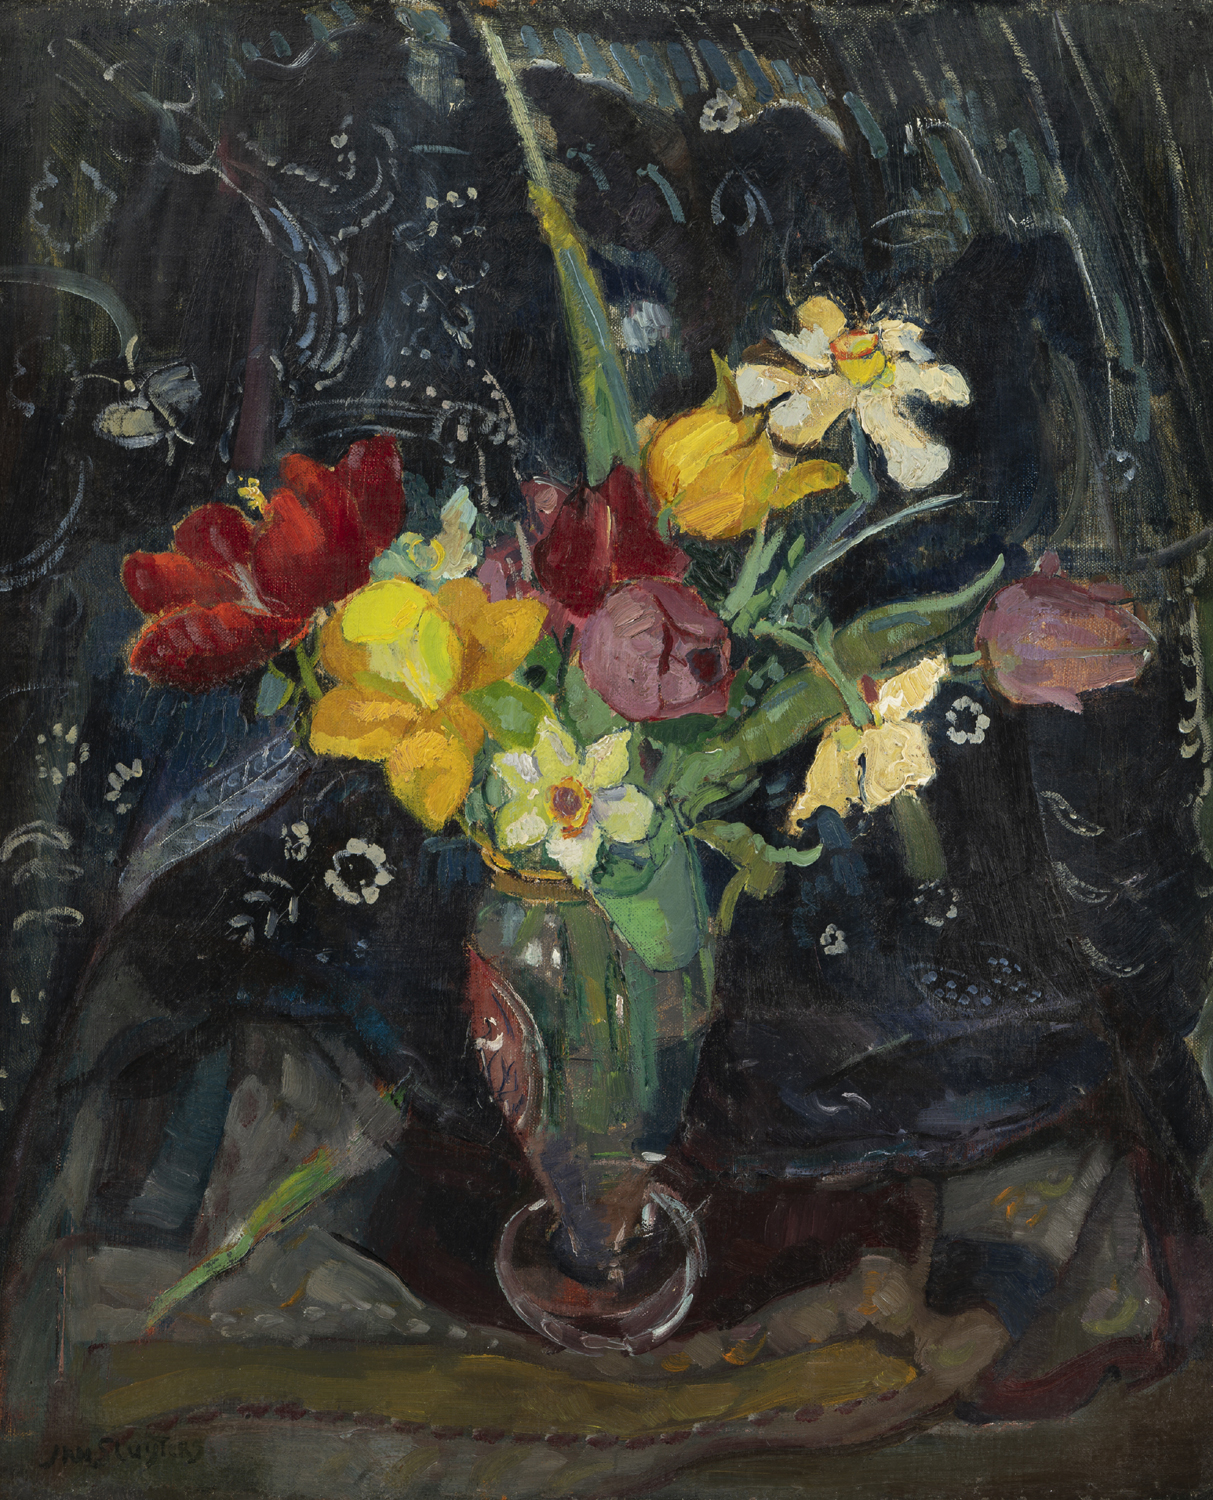 Jan Sluijters | Flowers in a vase | Kunsthandel Bies | Bies Gallery